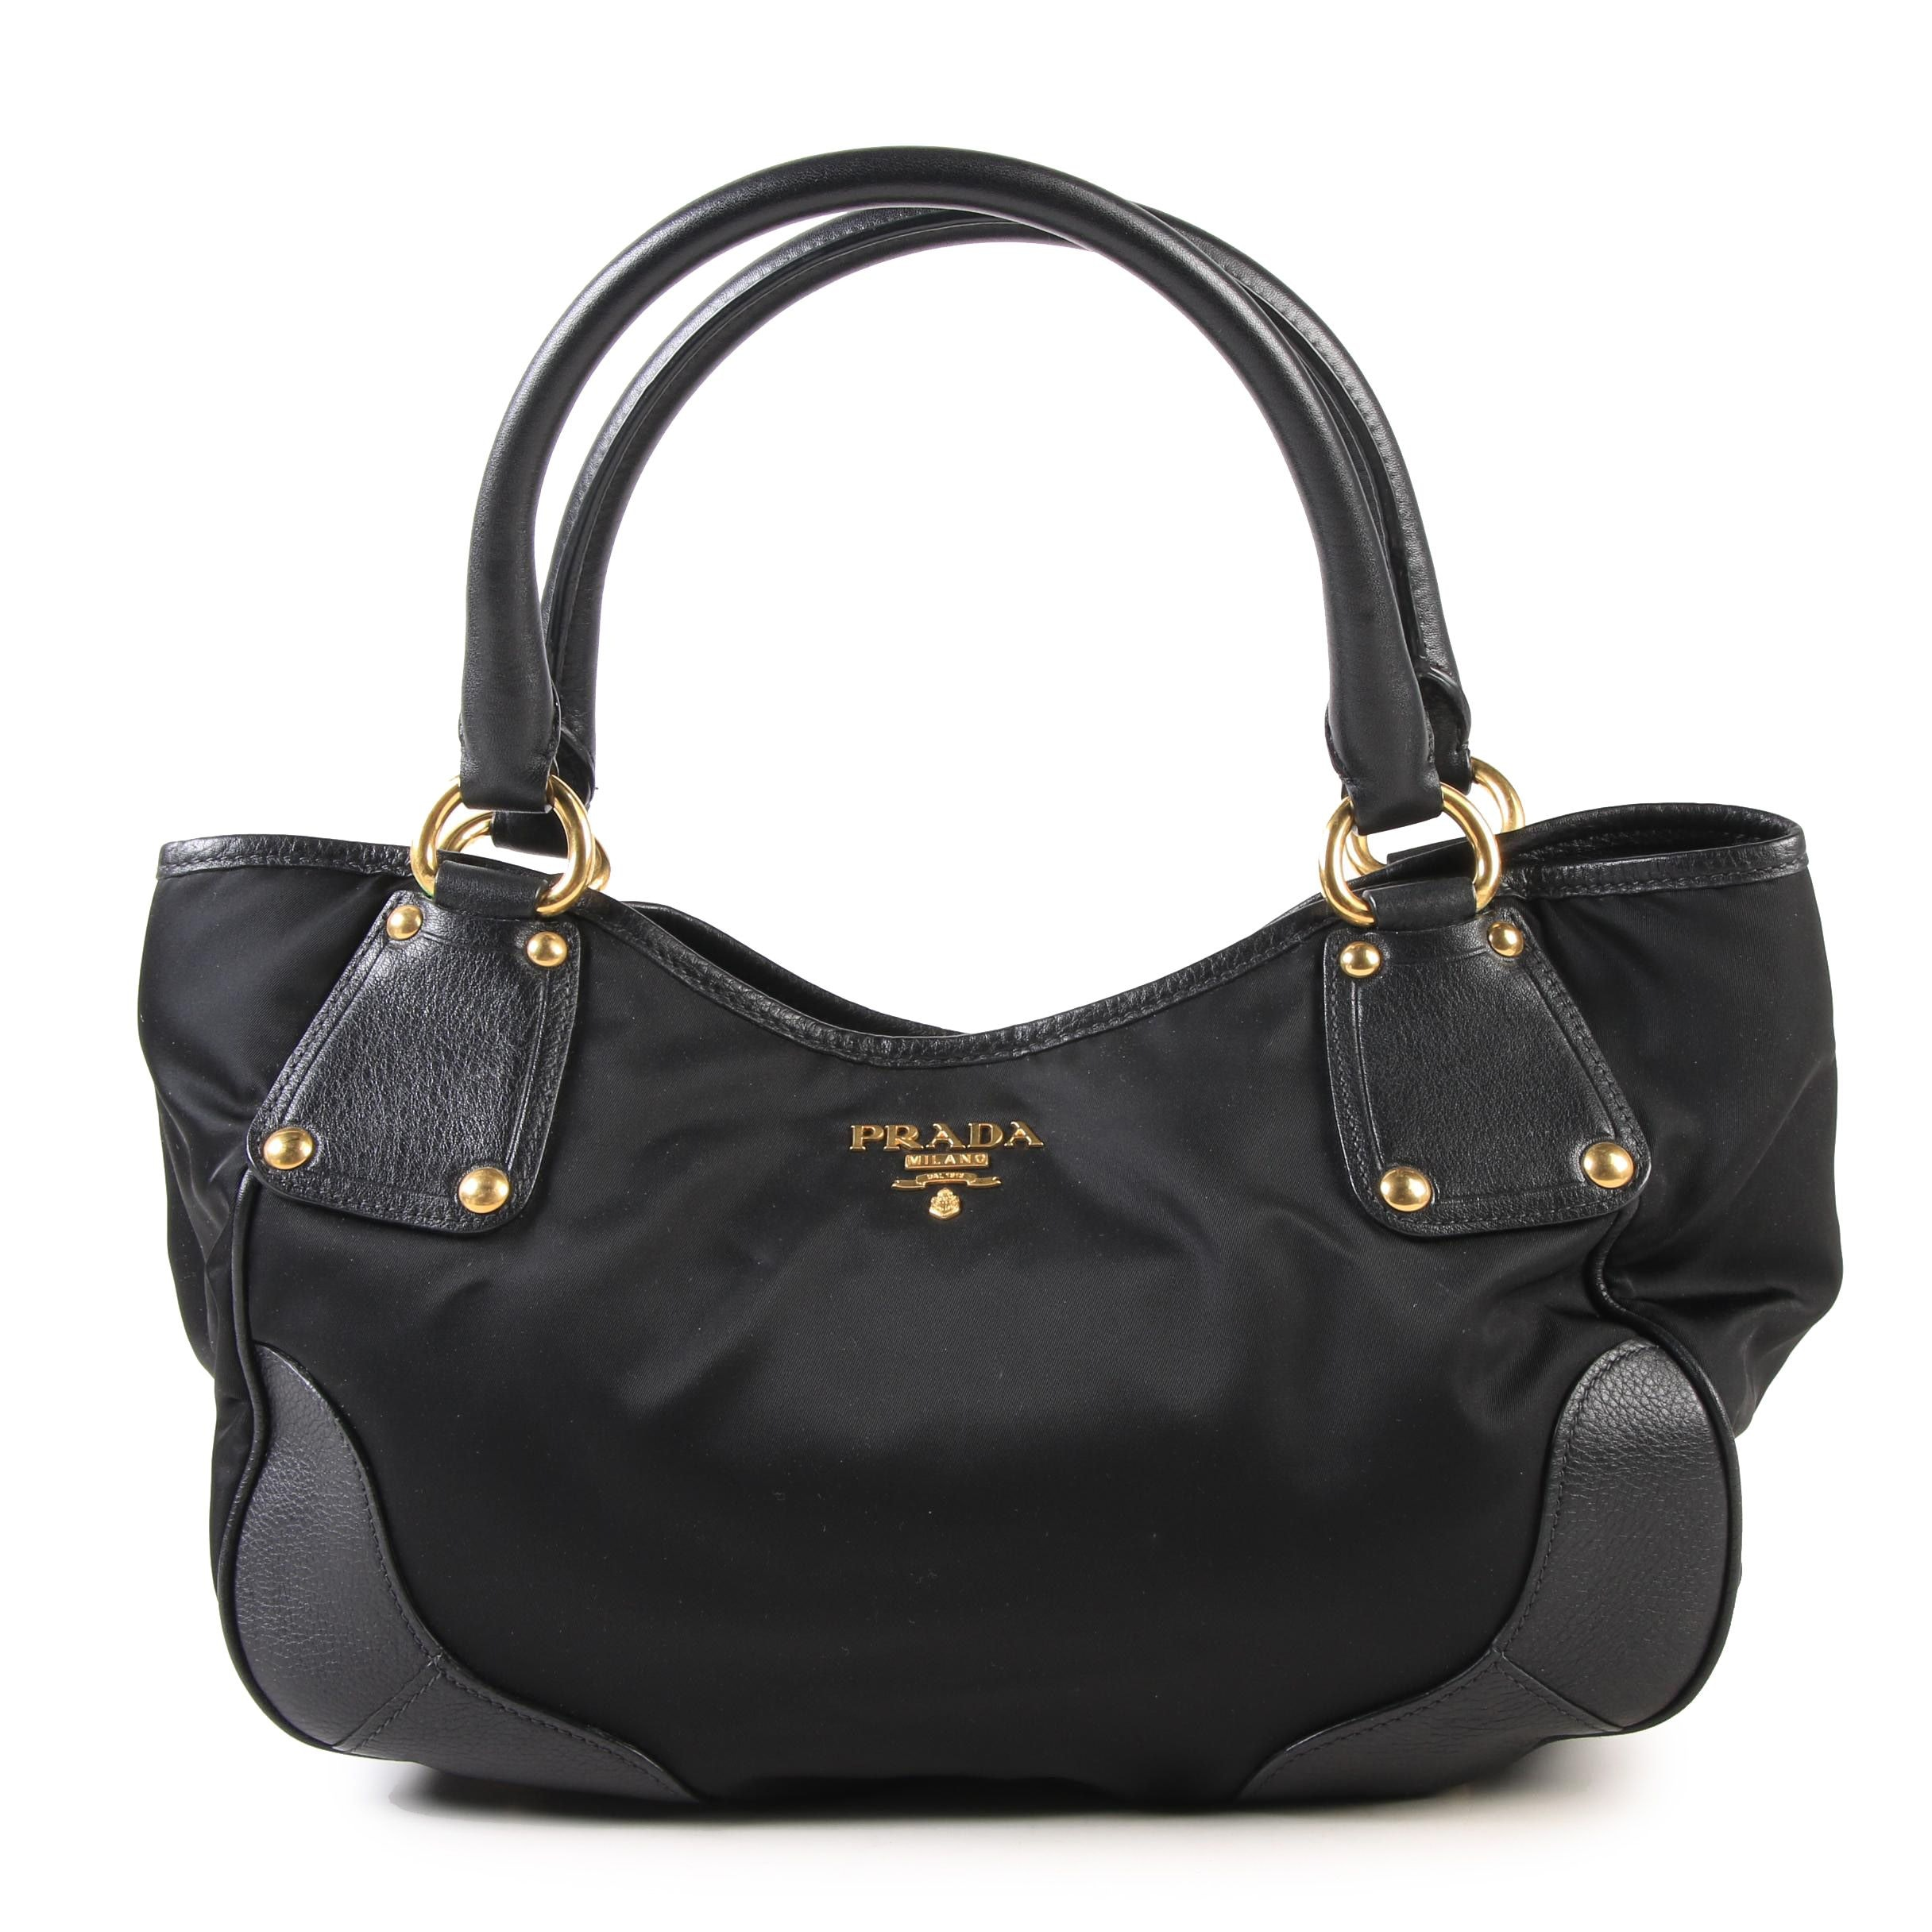 Prada Milano Black Nylon and Leather Shoulder Bag